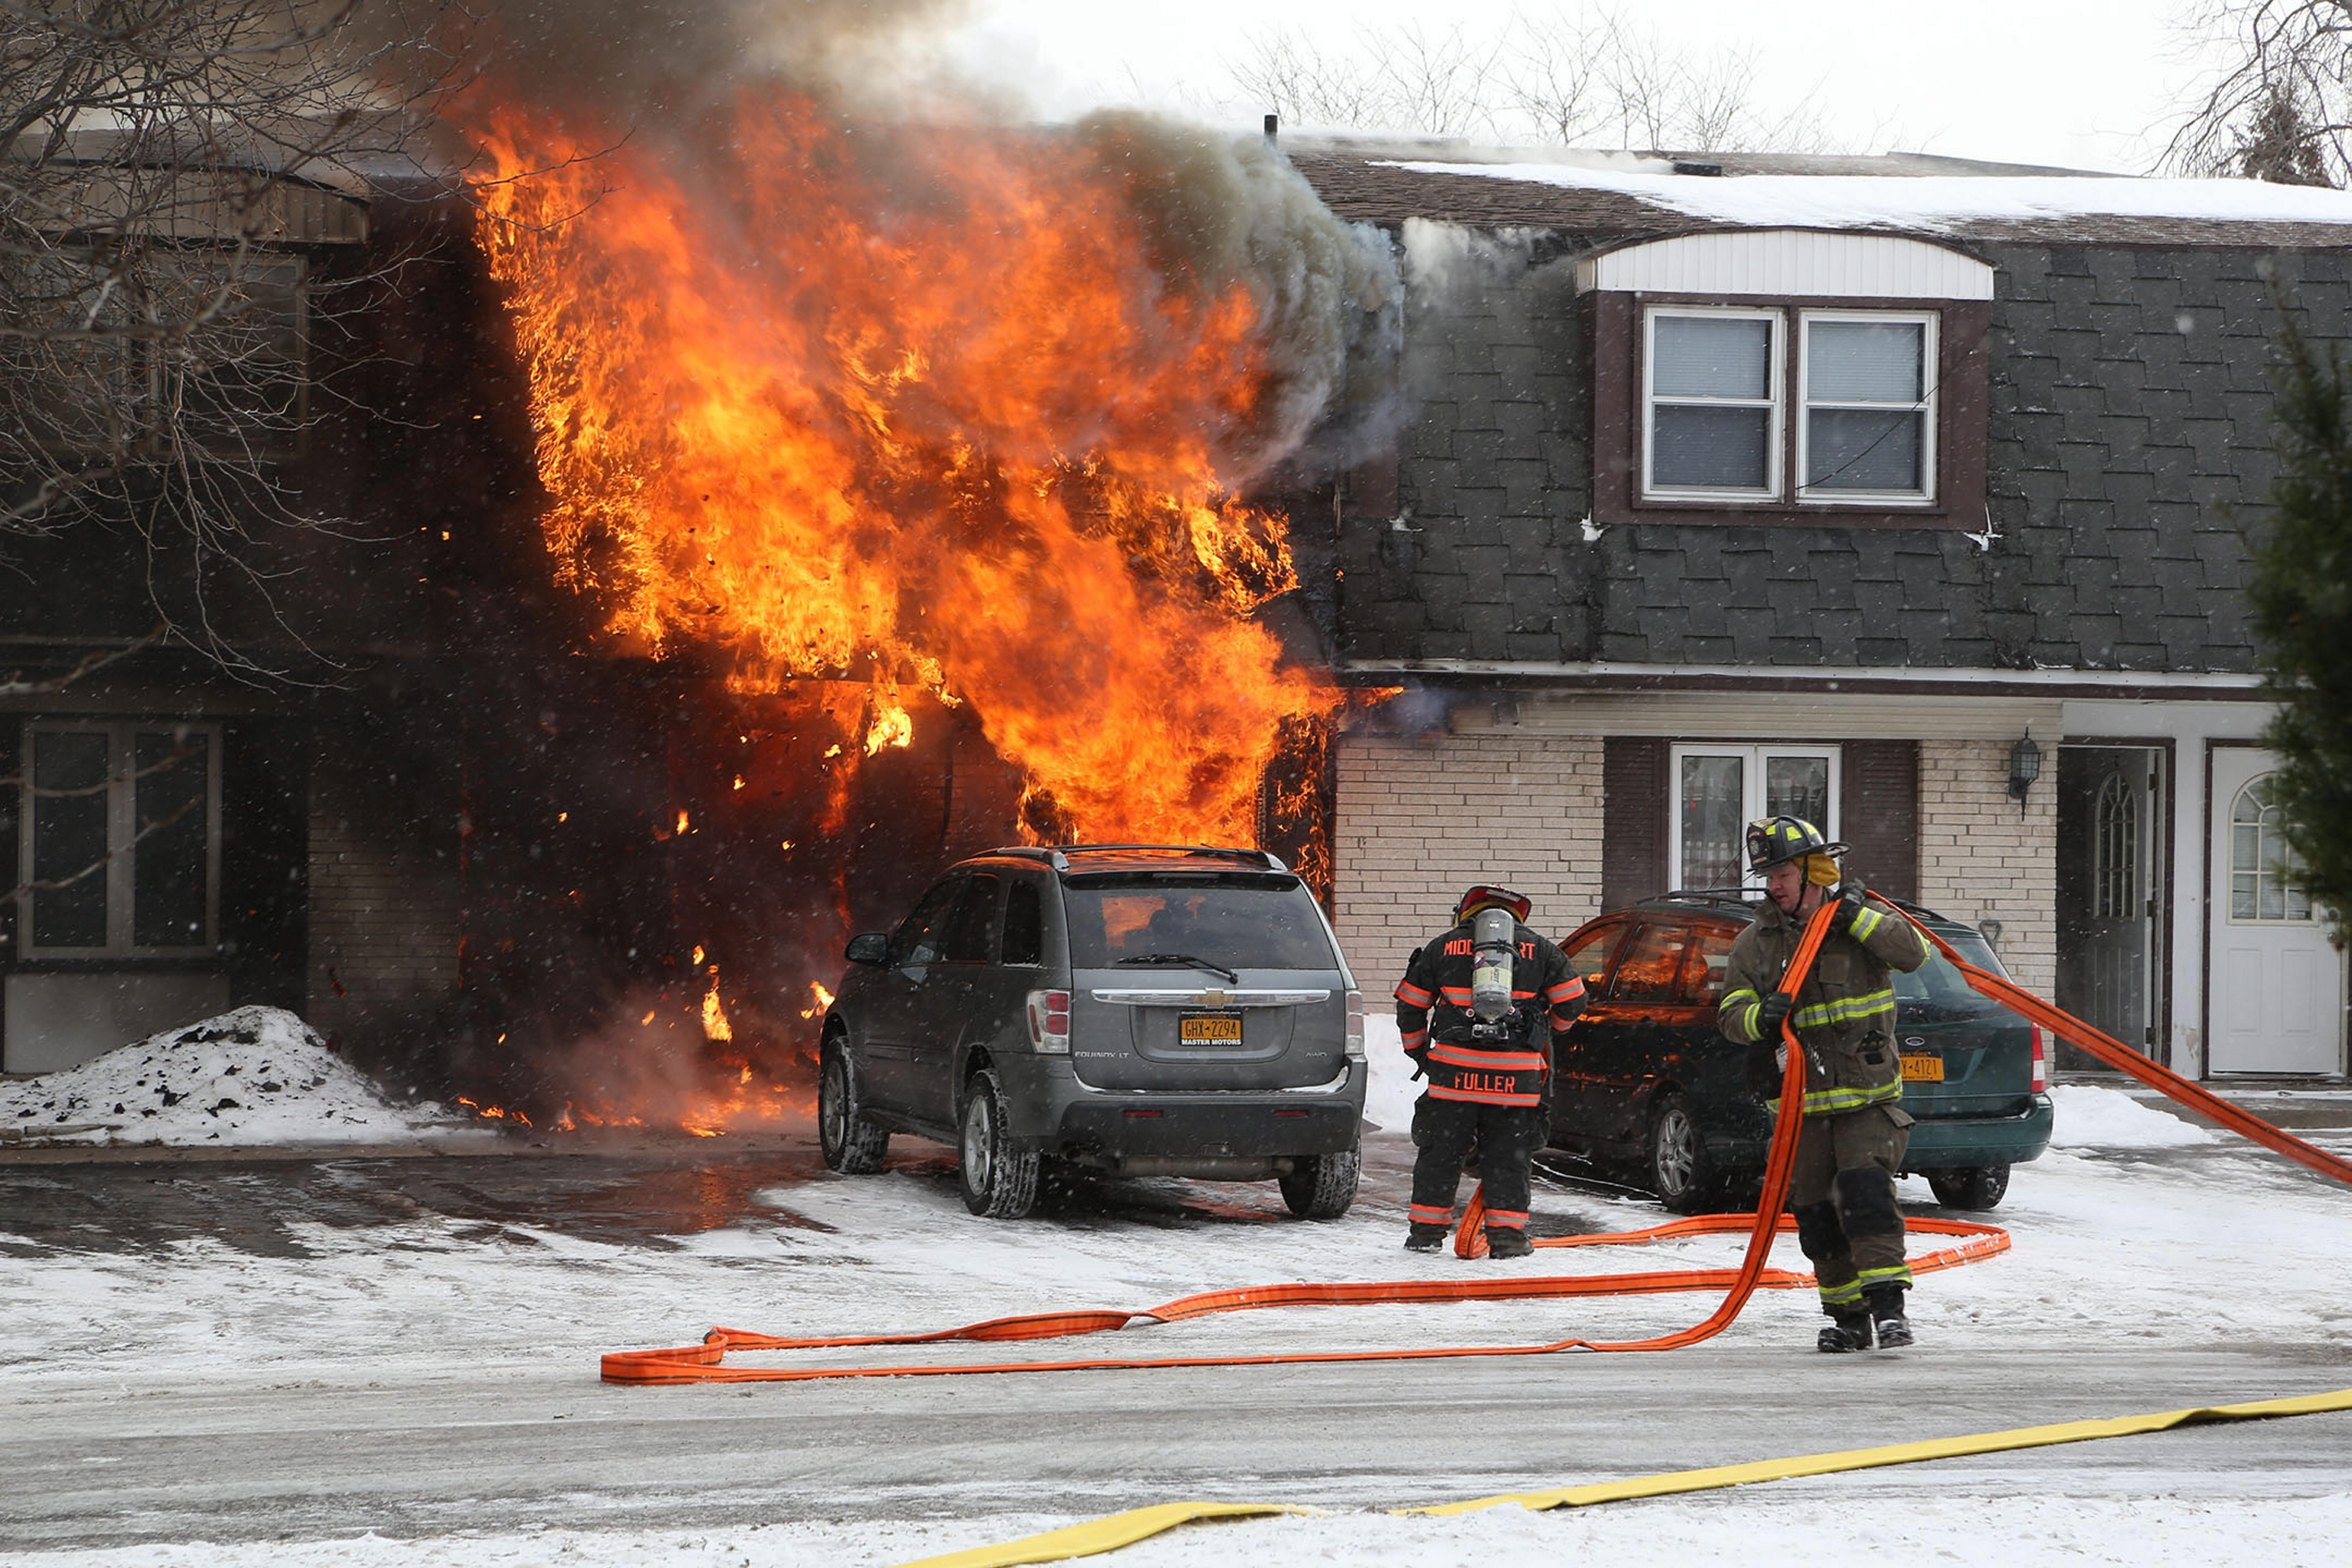 The front of this apartment building on Telegraph Road in Middleport was fully engulfed in flames when firefighters arrived. Four children and two adults were rescued from the blaze.